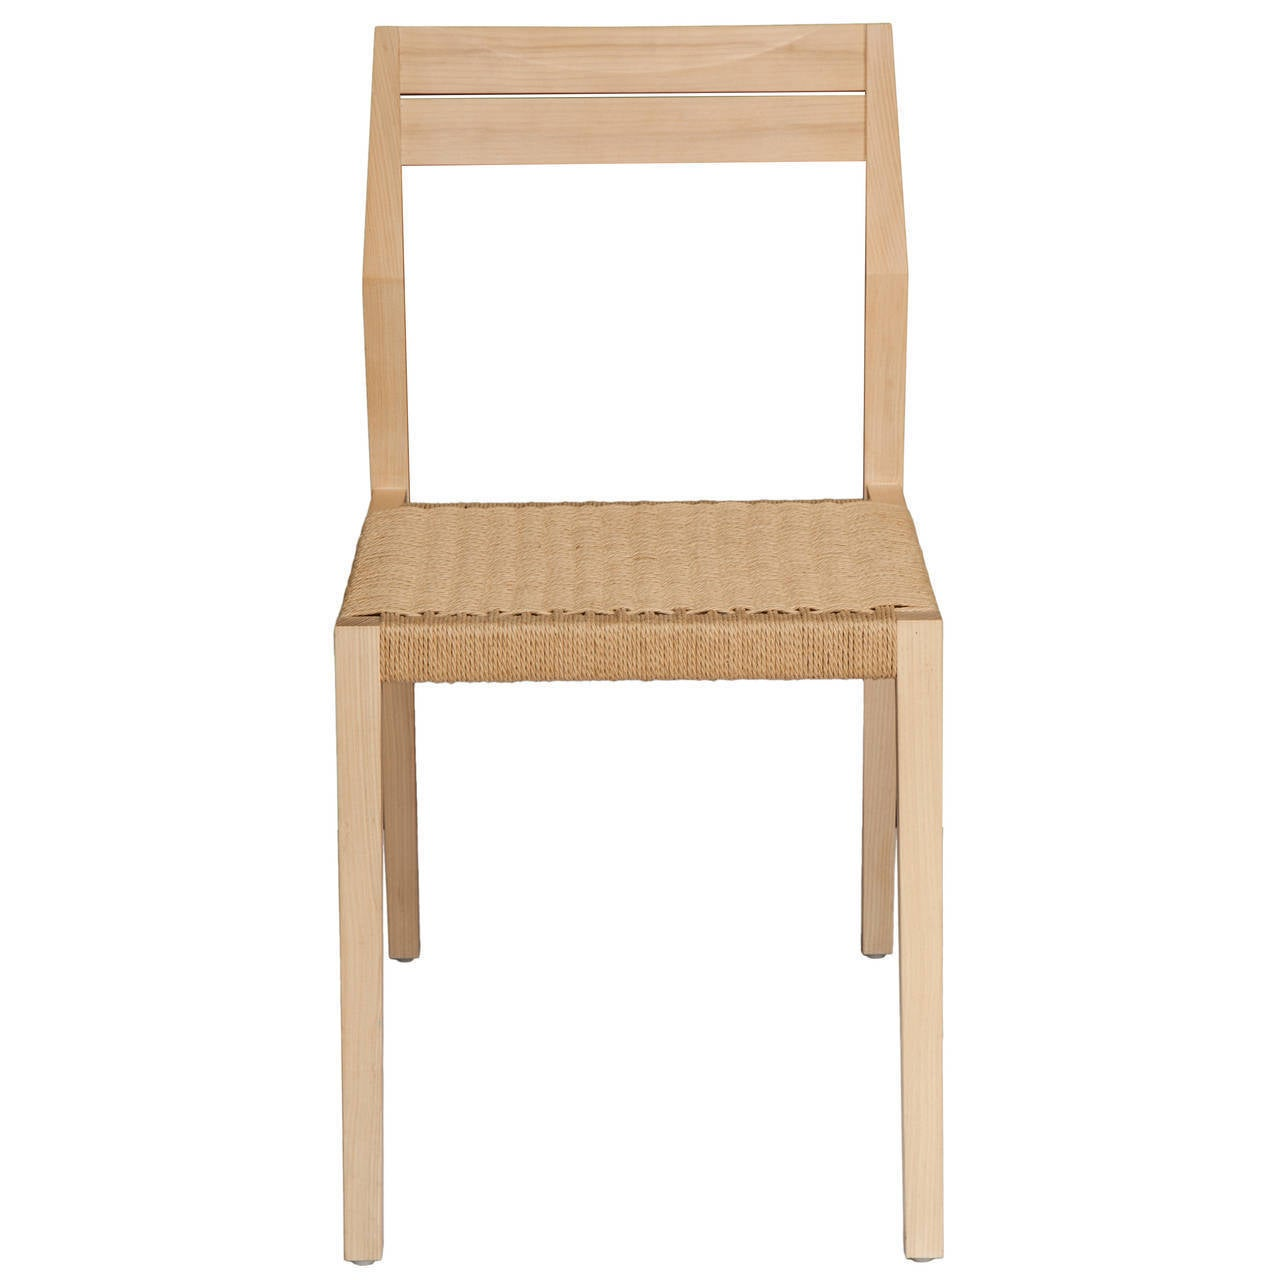 Stillmade Solid White Oak Dining Chair With Paper Cord Seat For - Contemporary wooden dining chairs